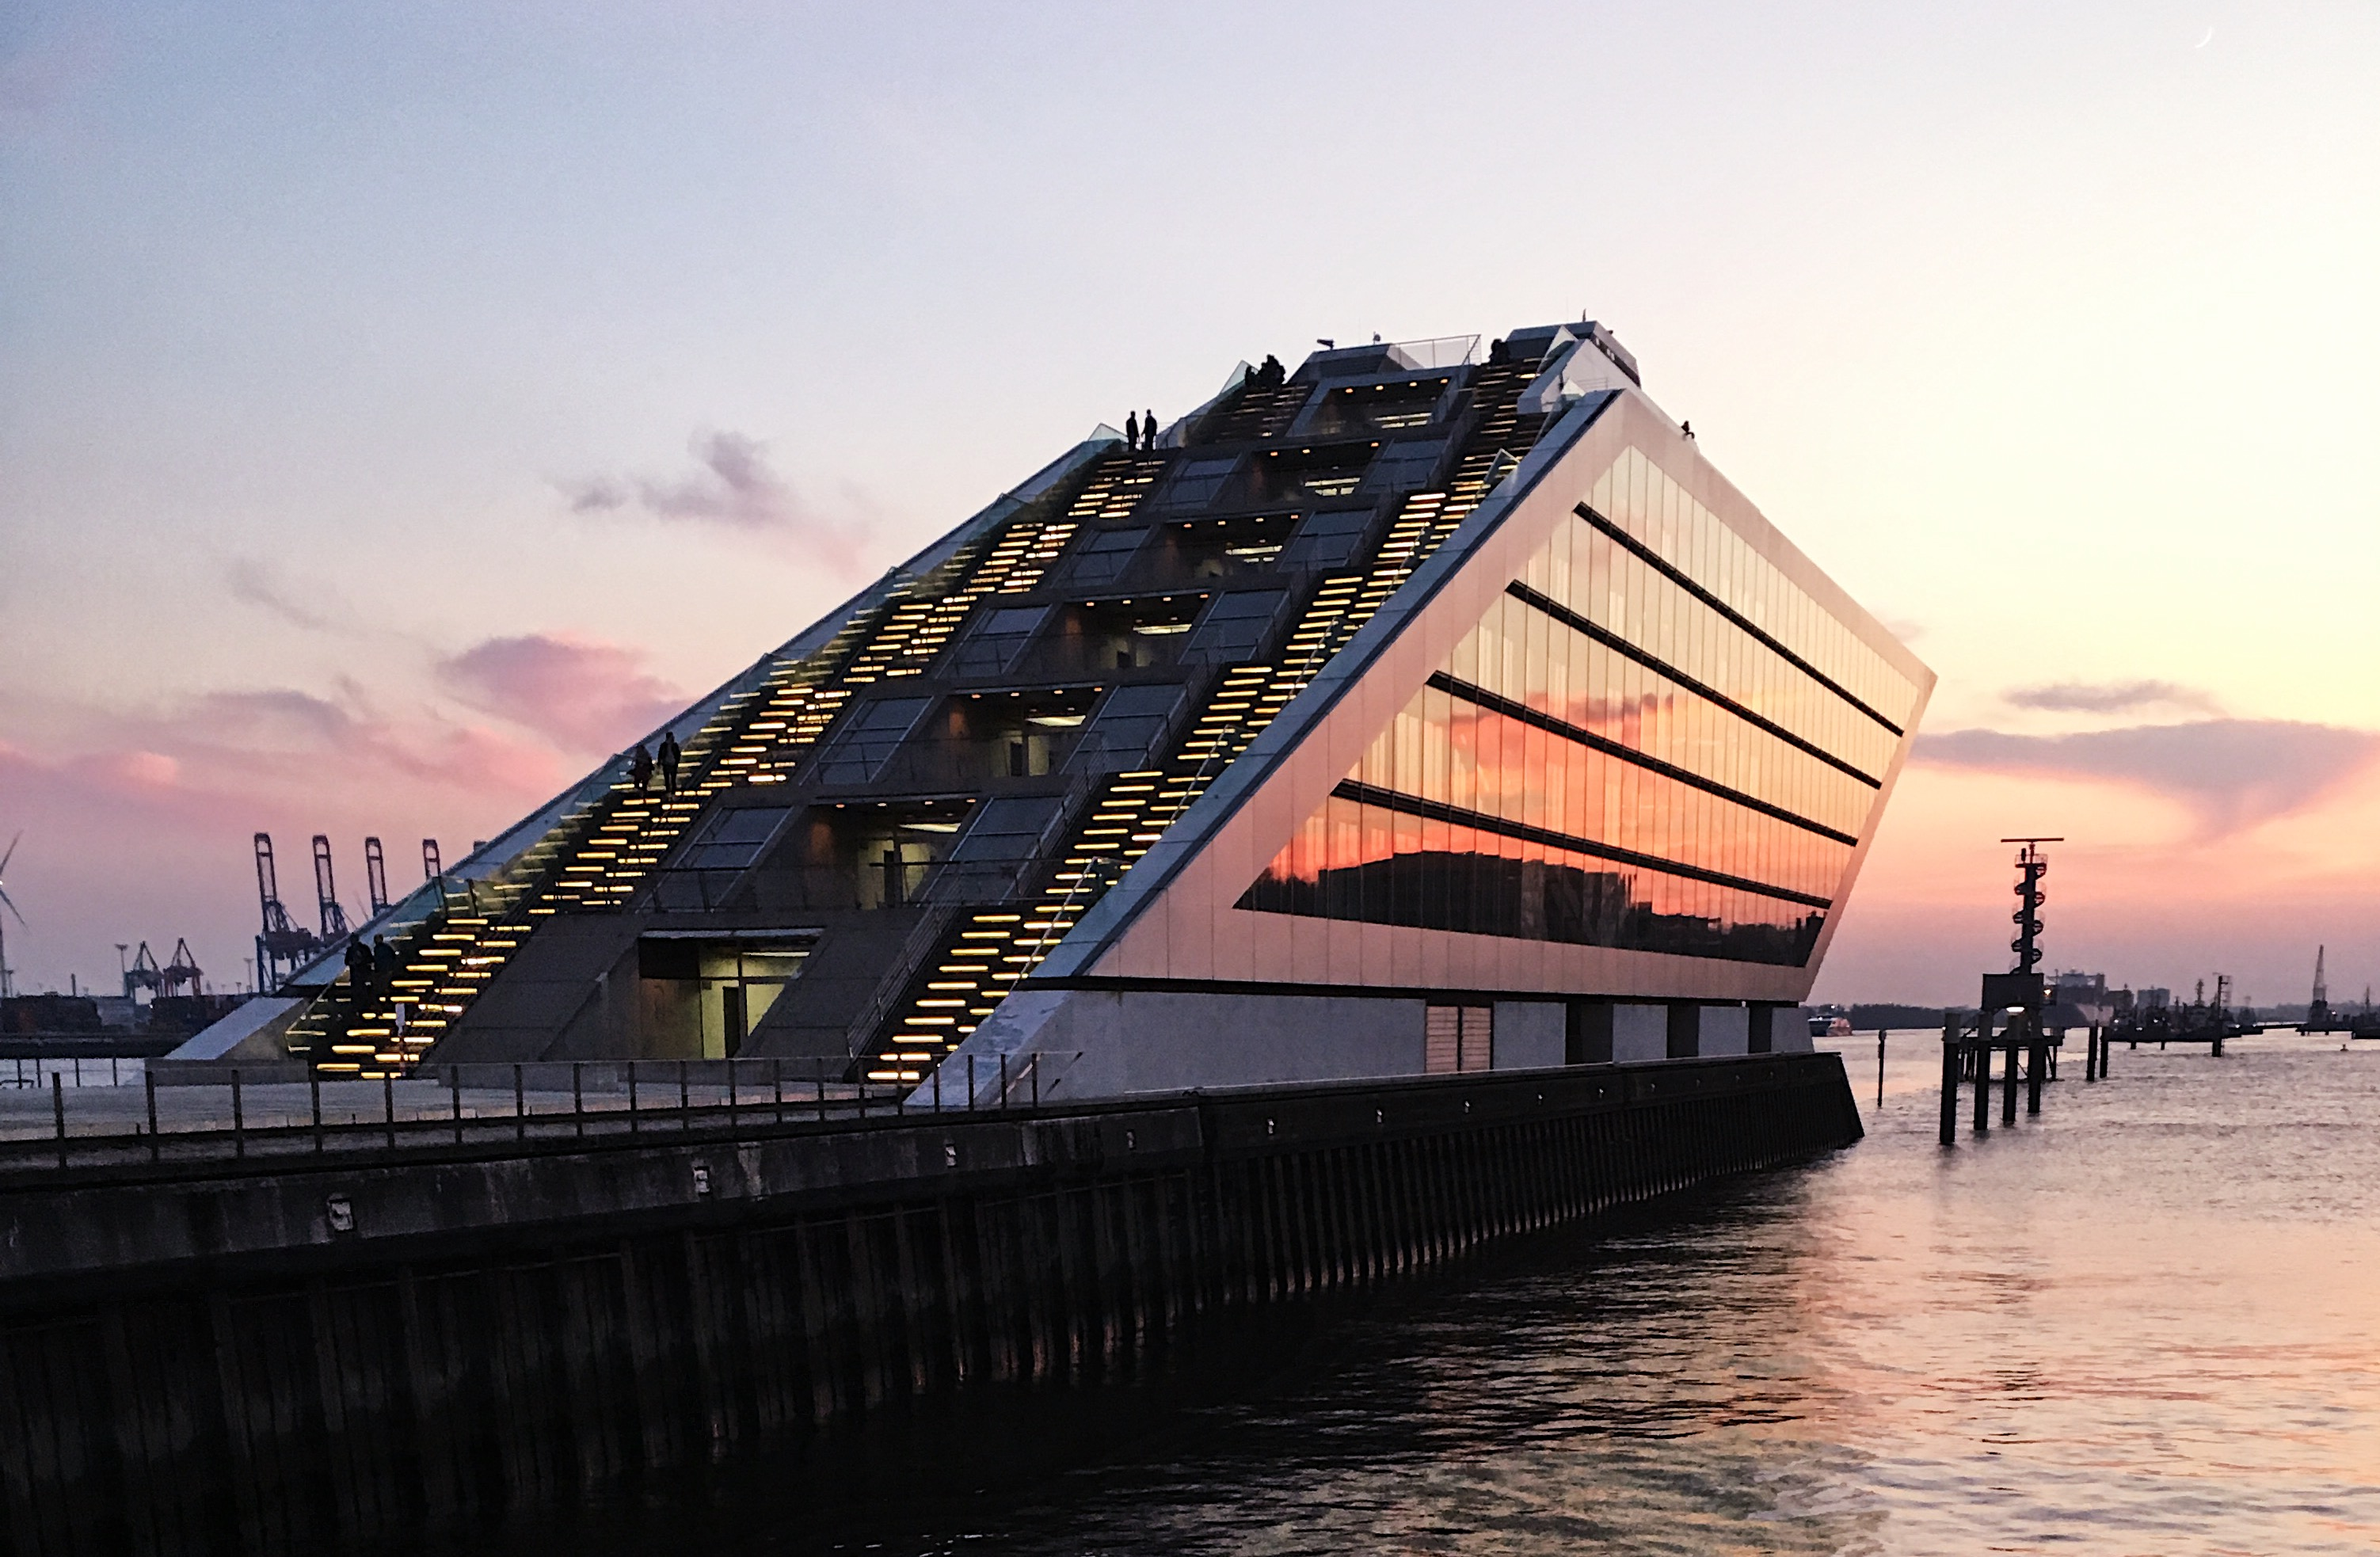 Dockland Office Building in Hamburg, Germany at sunset